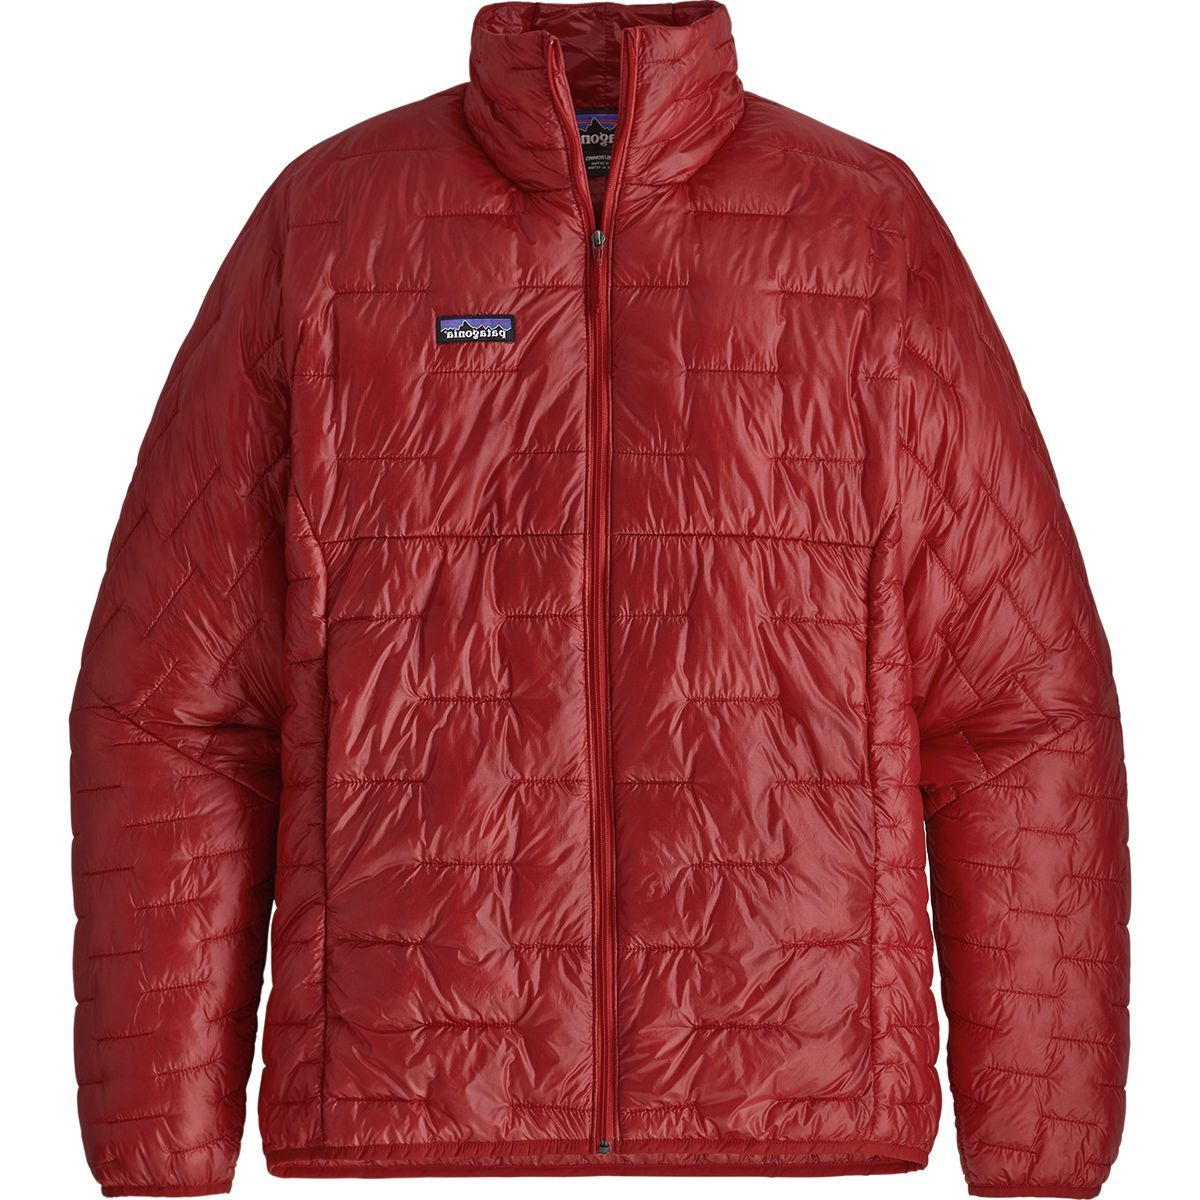 Patagonia Micro Puff Insulated Jacket - Men's